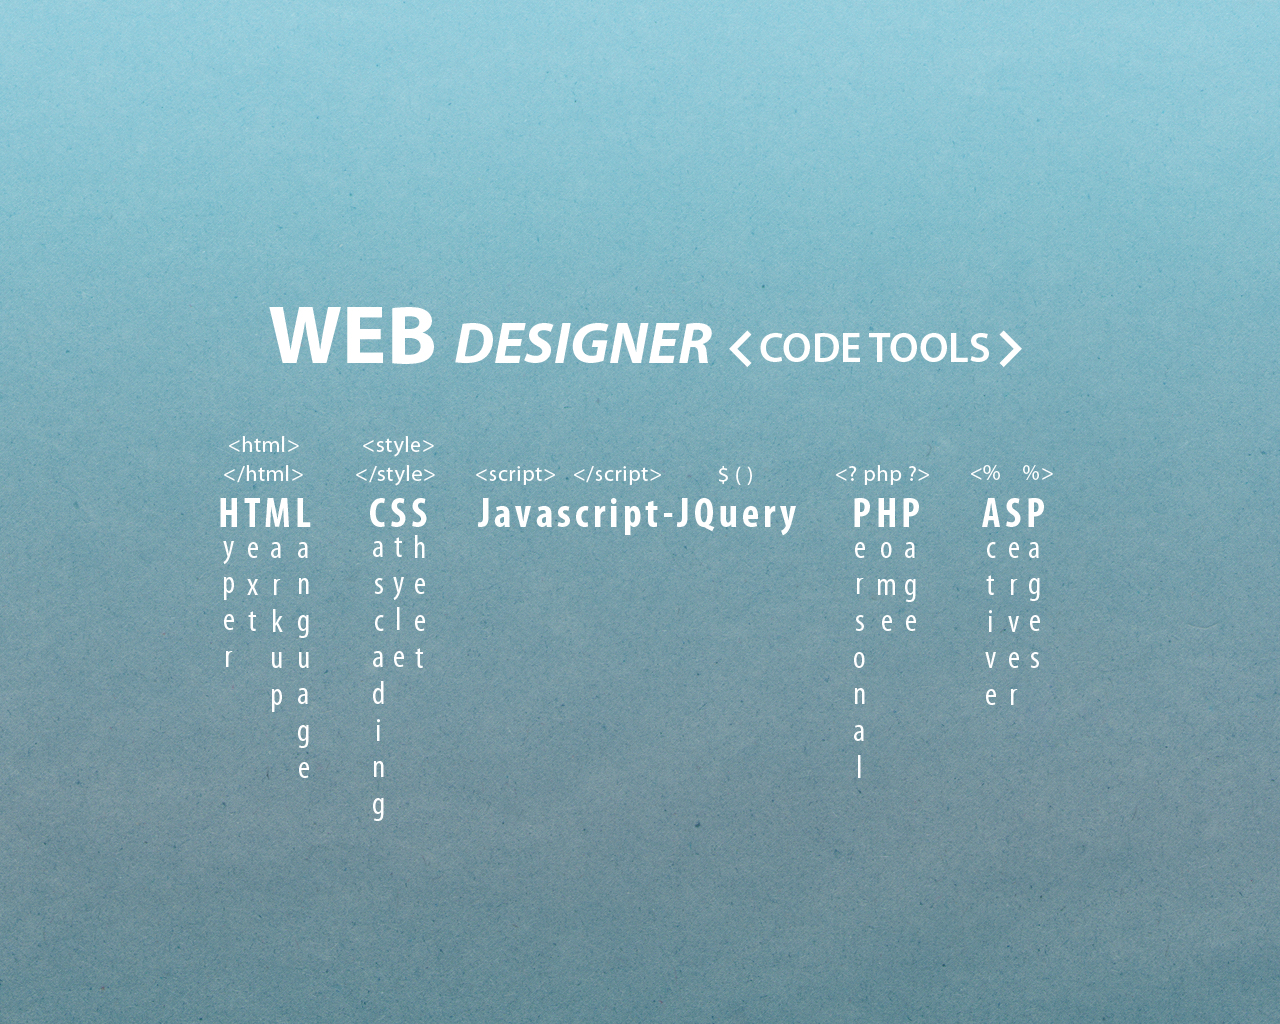 web designer code tools wallpaper by dabbex30 1280x1024